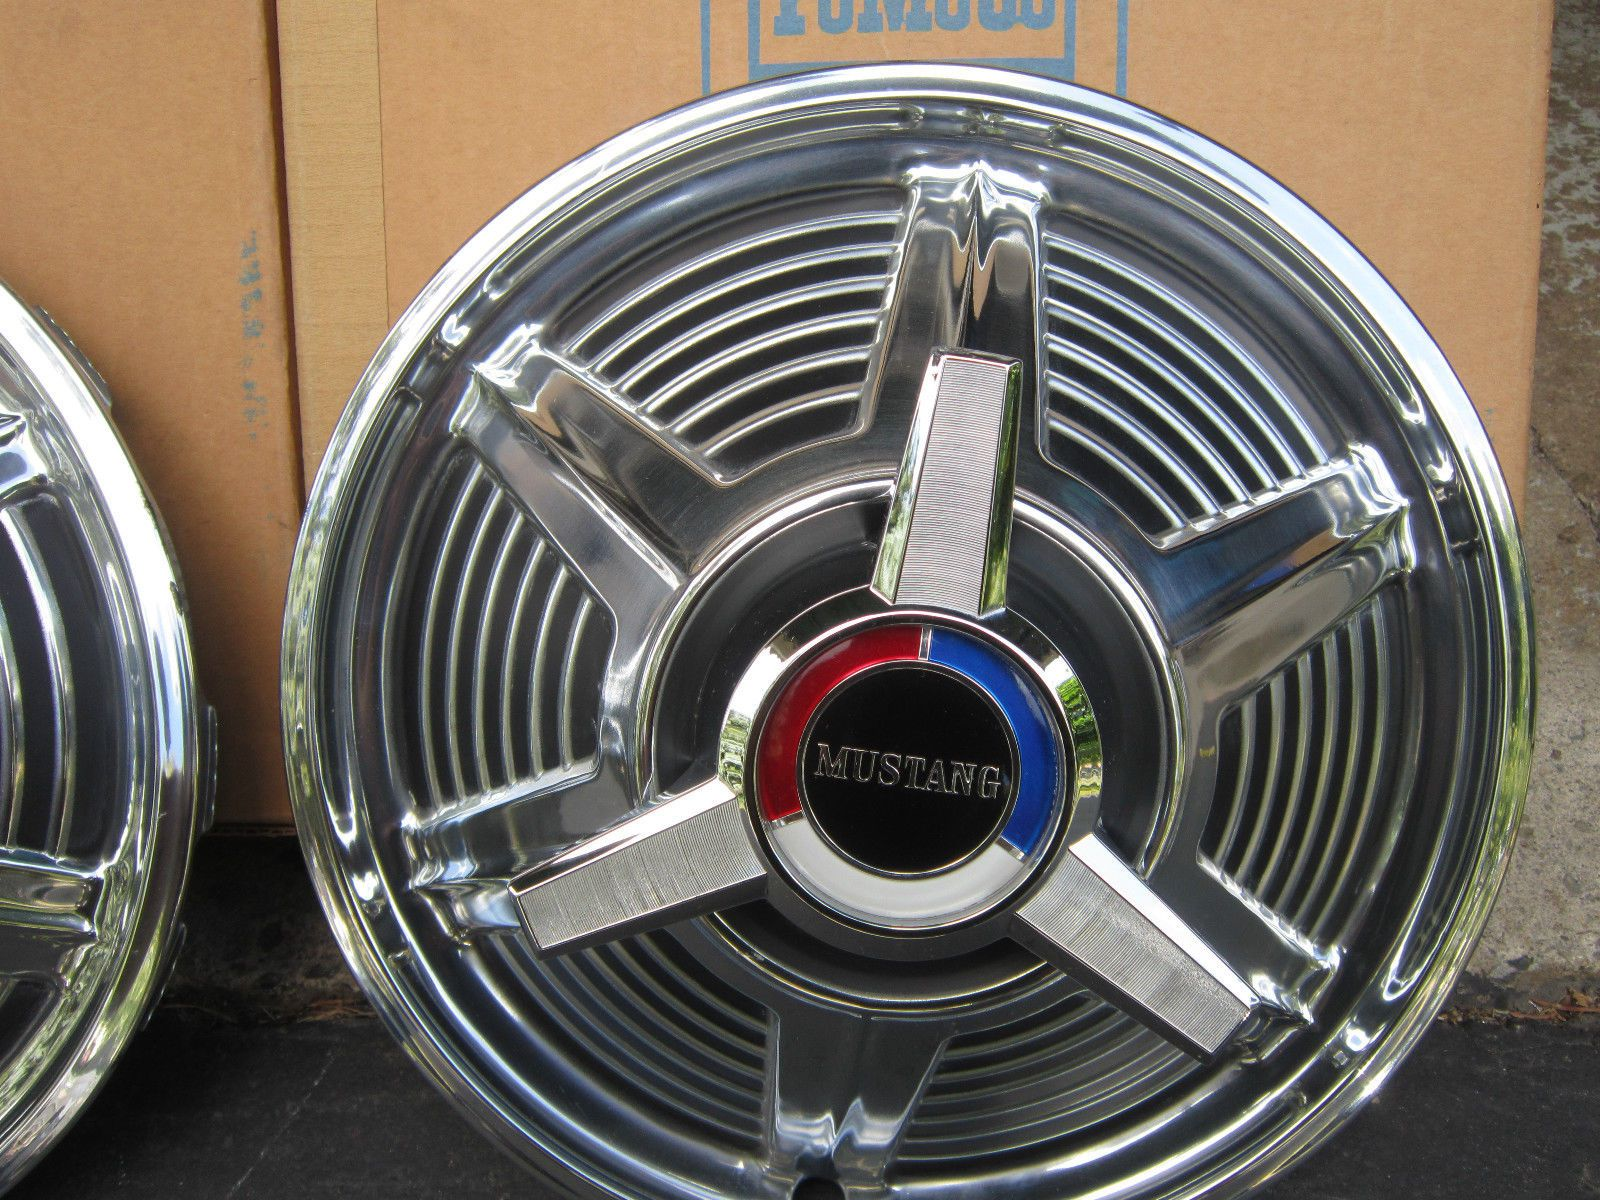 1964 1965 1966 Ford Mustang Wheel Covers With Spinners 13 Fomoco Hubcaps Ebay Wheel Cover Mustang Wheels Mustang